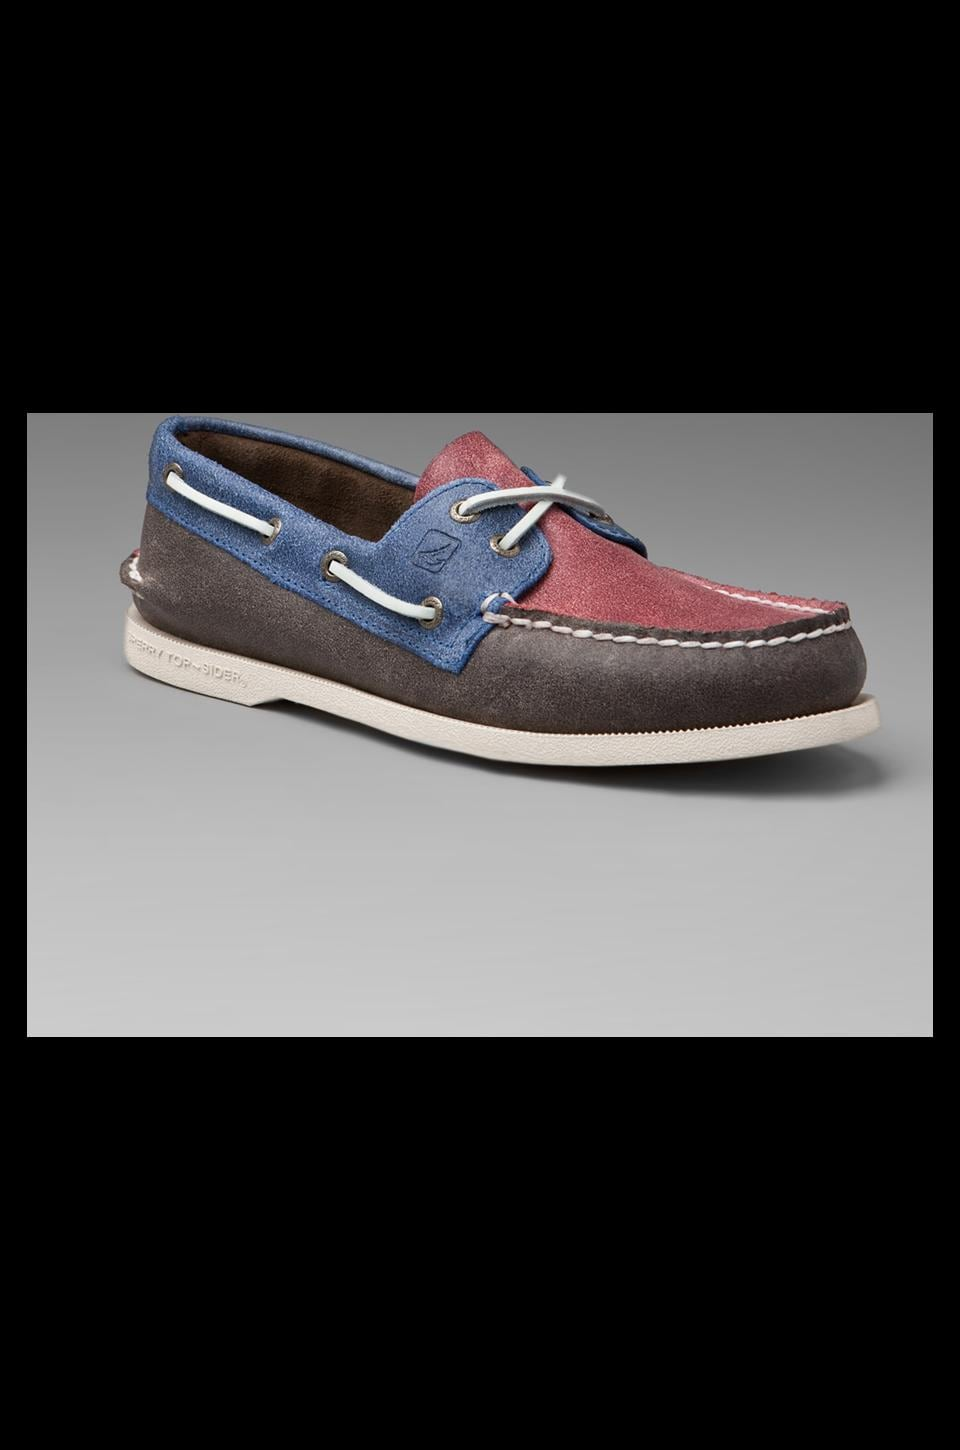 Sperry Top-Sider Salt Stained A/O in Blue/Brown/Red